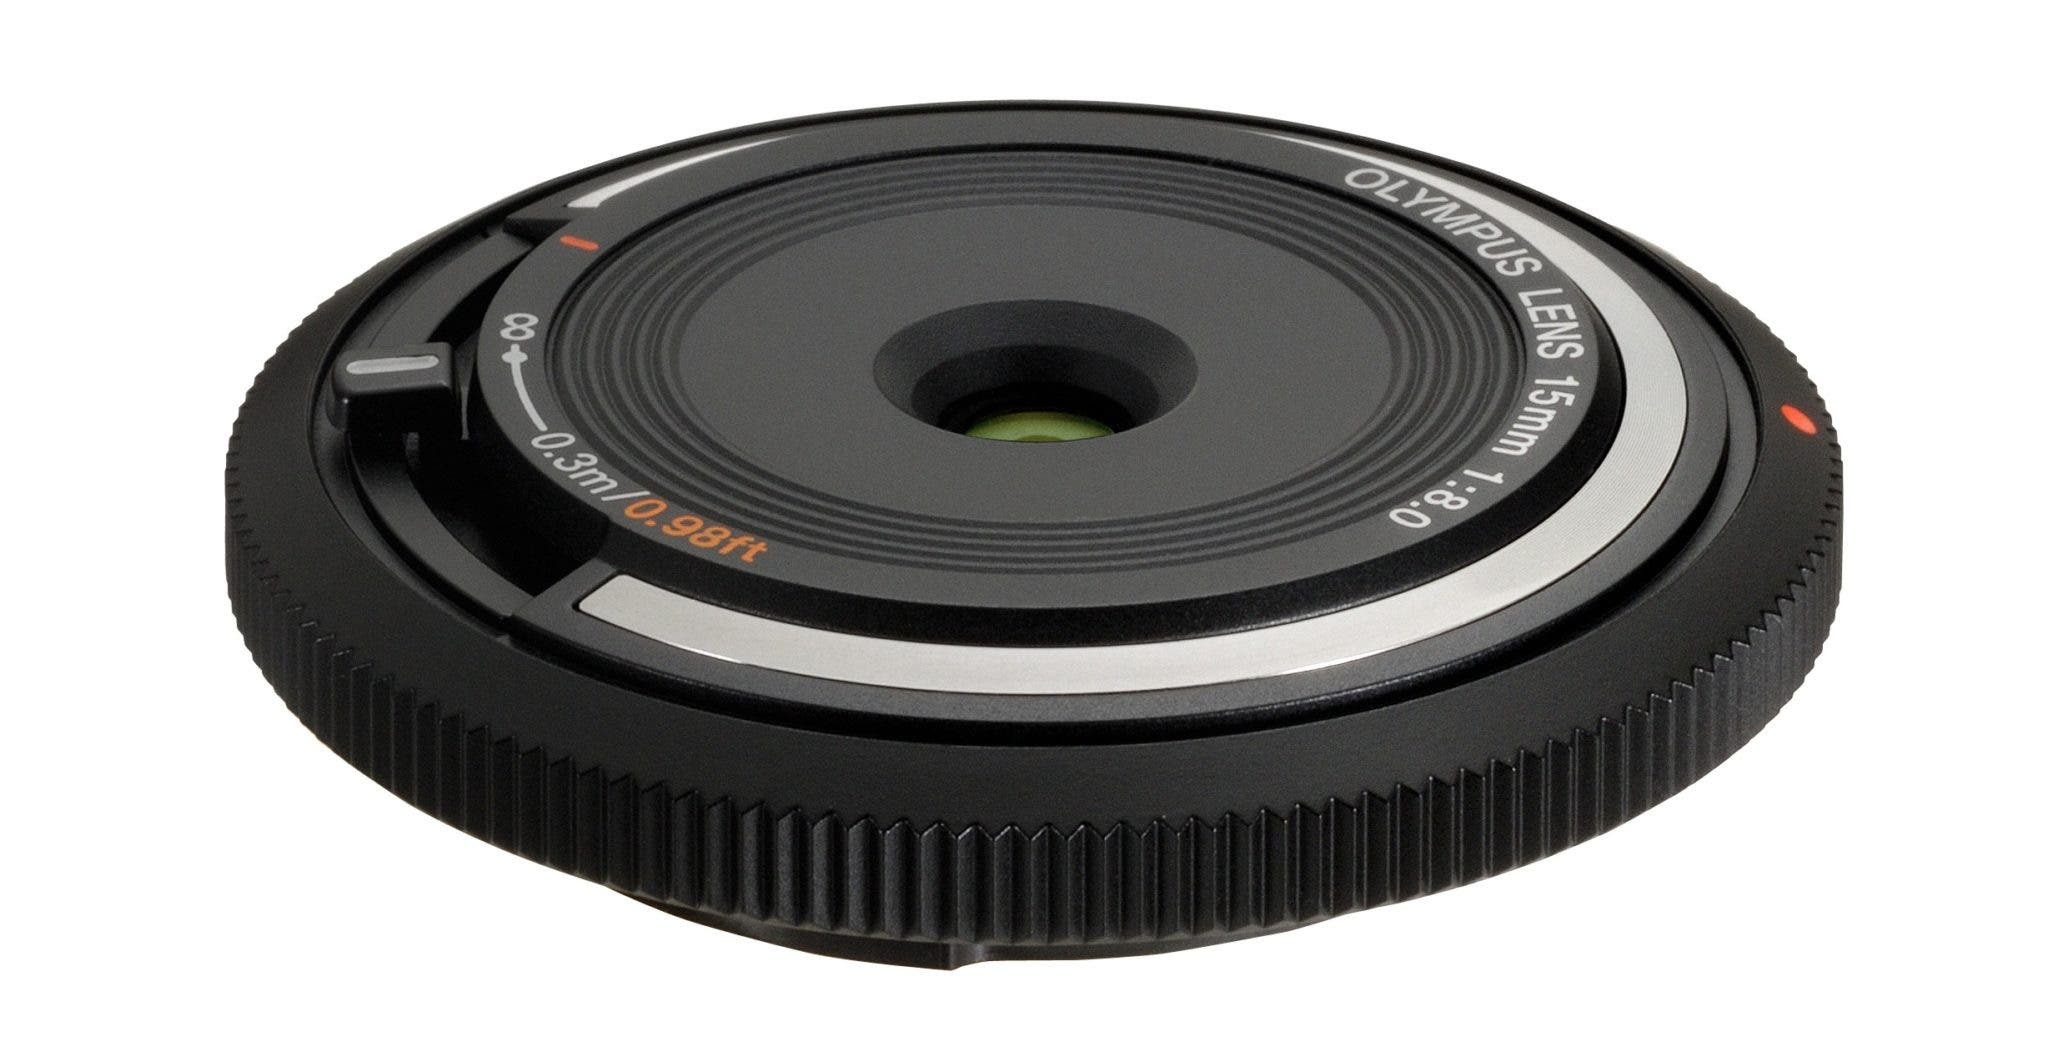 More M43 Lenses From Olympus For The Mirrorless Army